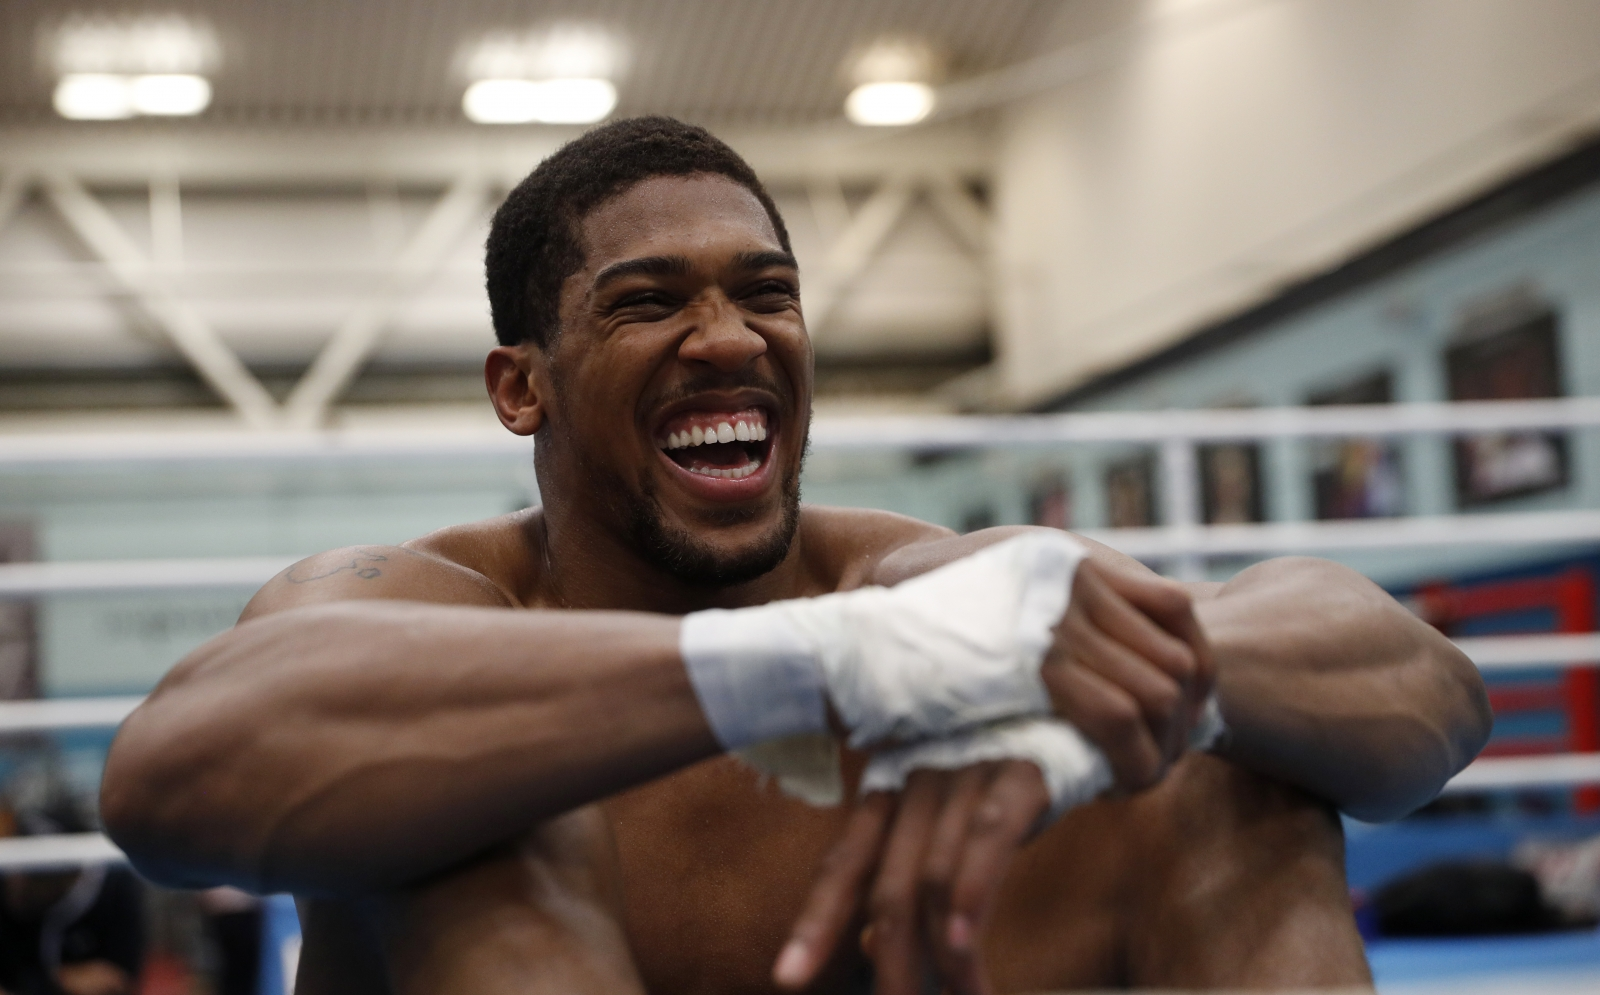 Joshua ready to face former sparring partner, Klitschko